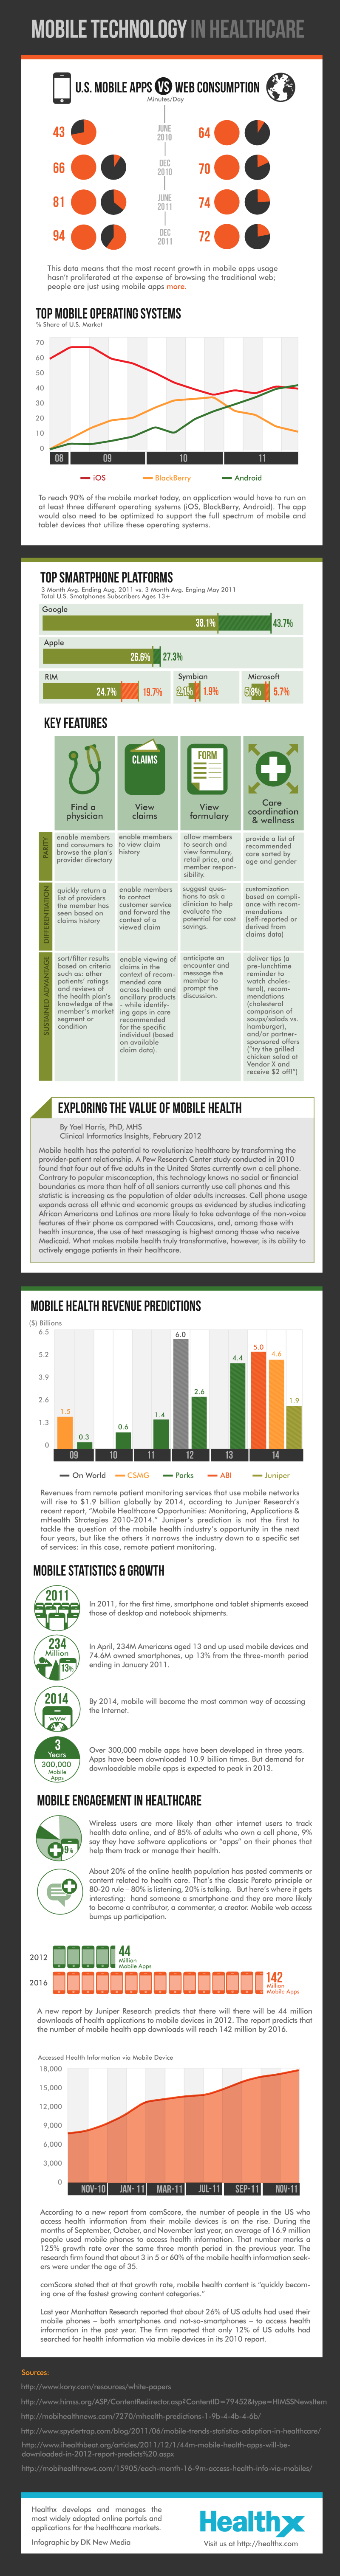 Mobile Technology In Healthcare Healthcare Infographics Healthcare Technology Infographic Health